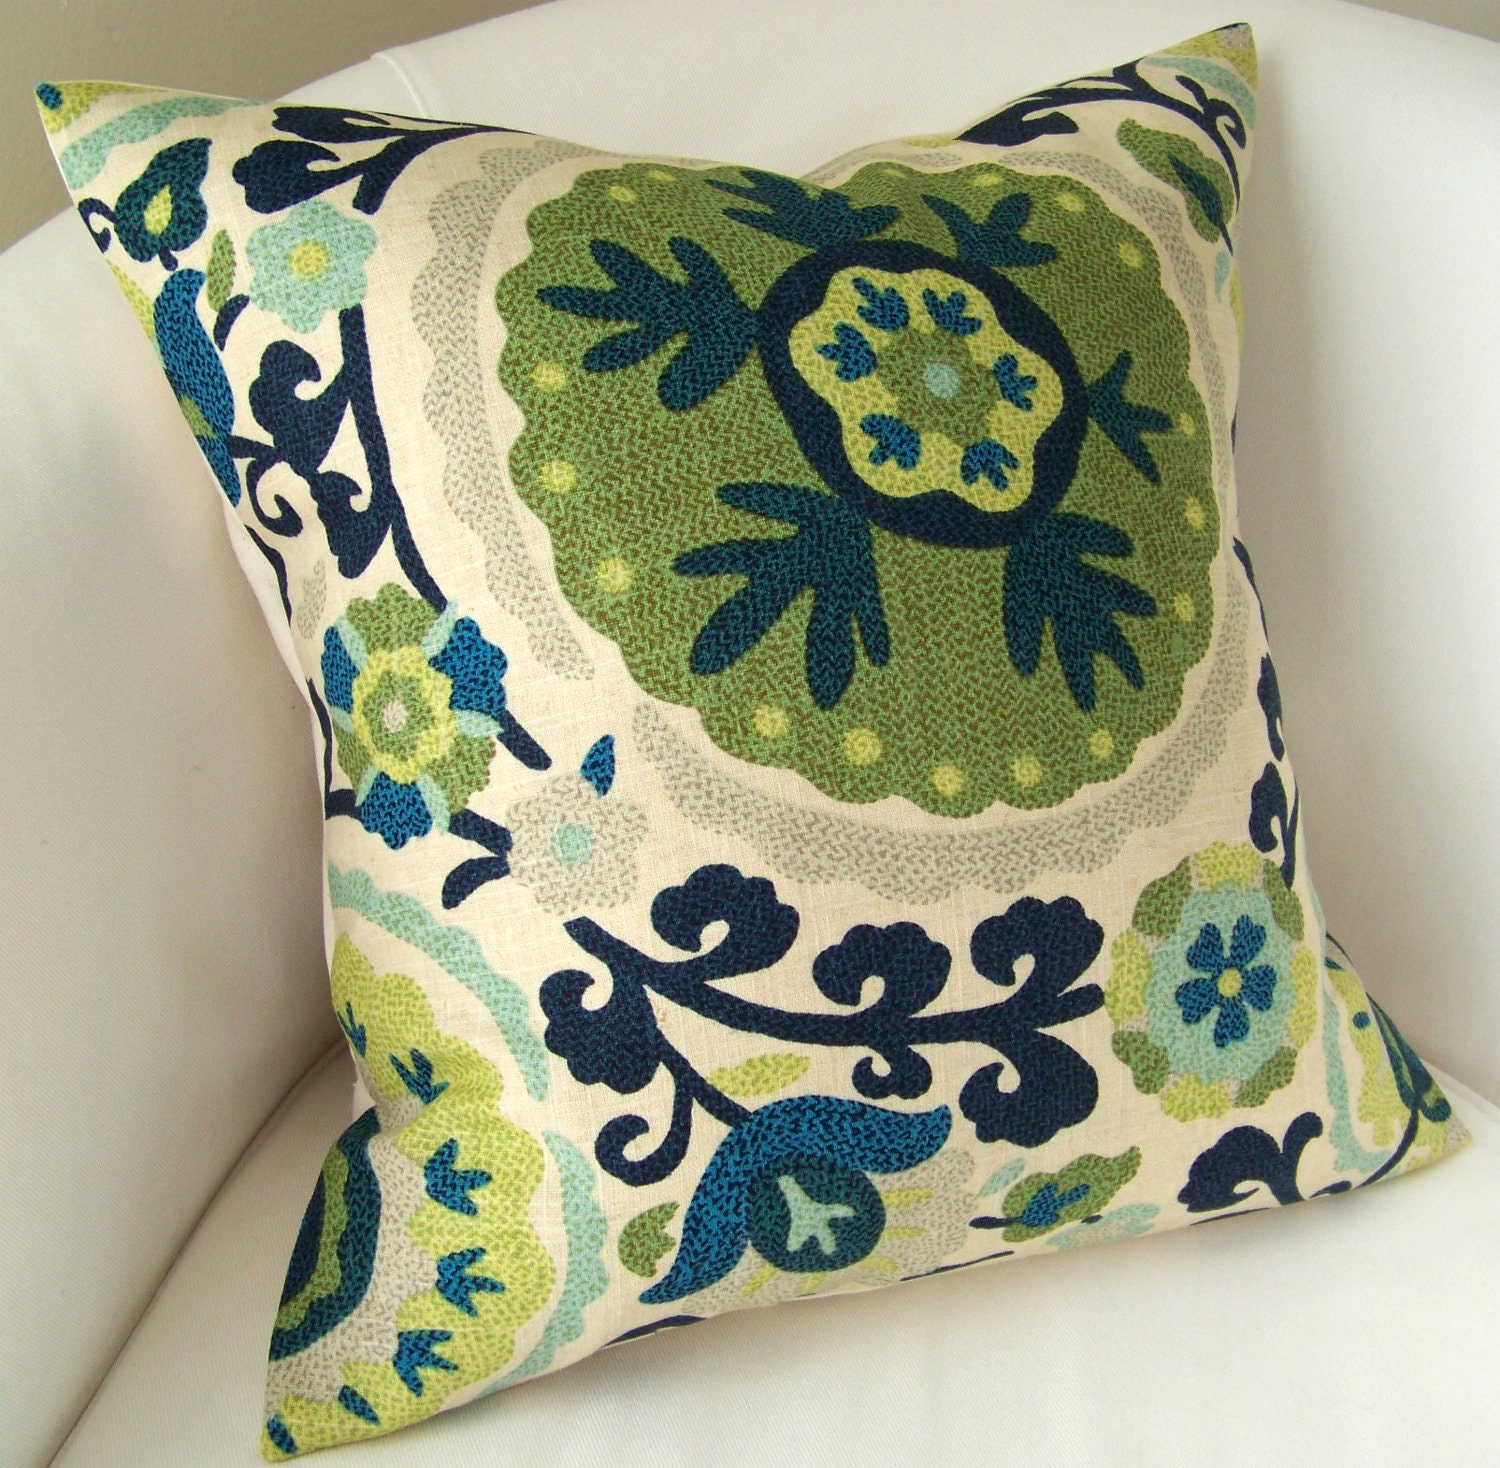 Decorative Pillows For Blue Couch : Suzani Pillow Cover Blue Green Pillow Decorative Throw Pillow